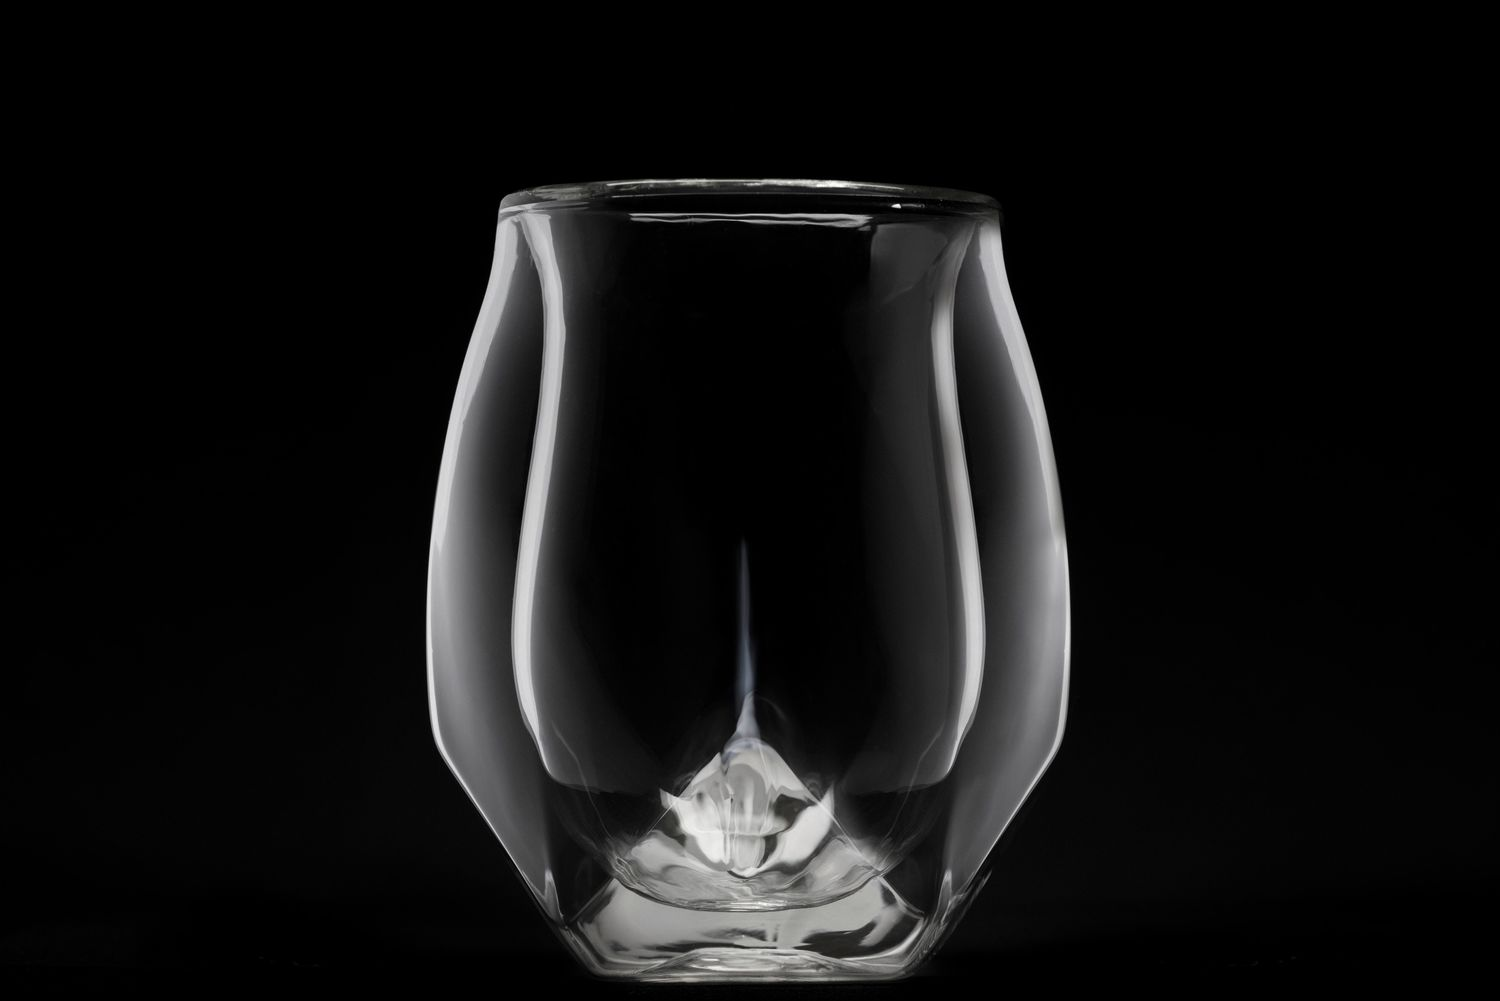 510b9b6b7e08 First Impressions Drinking from a Norlan Whisky Glass — whisky.buzz